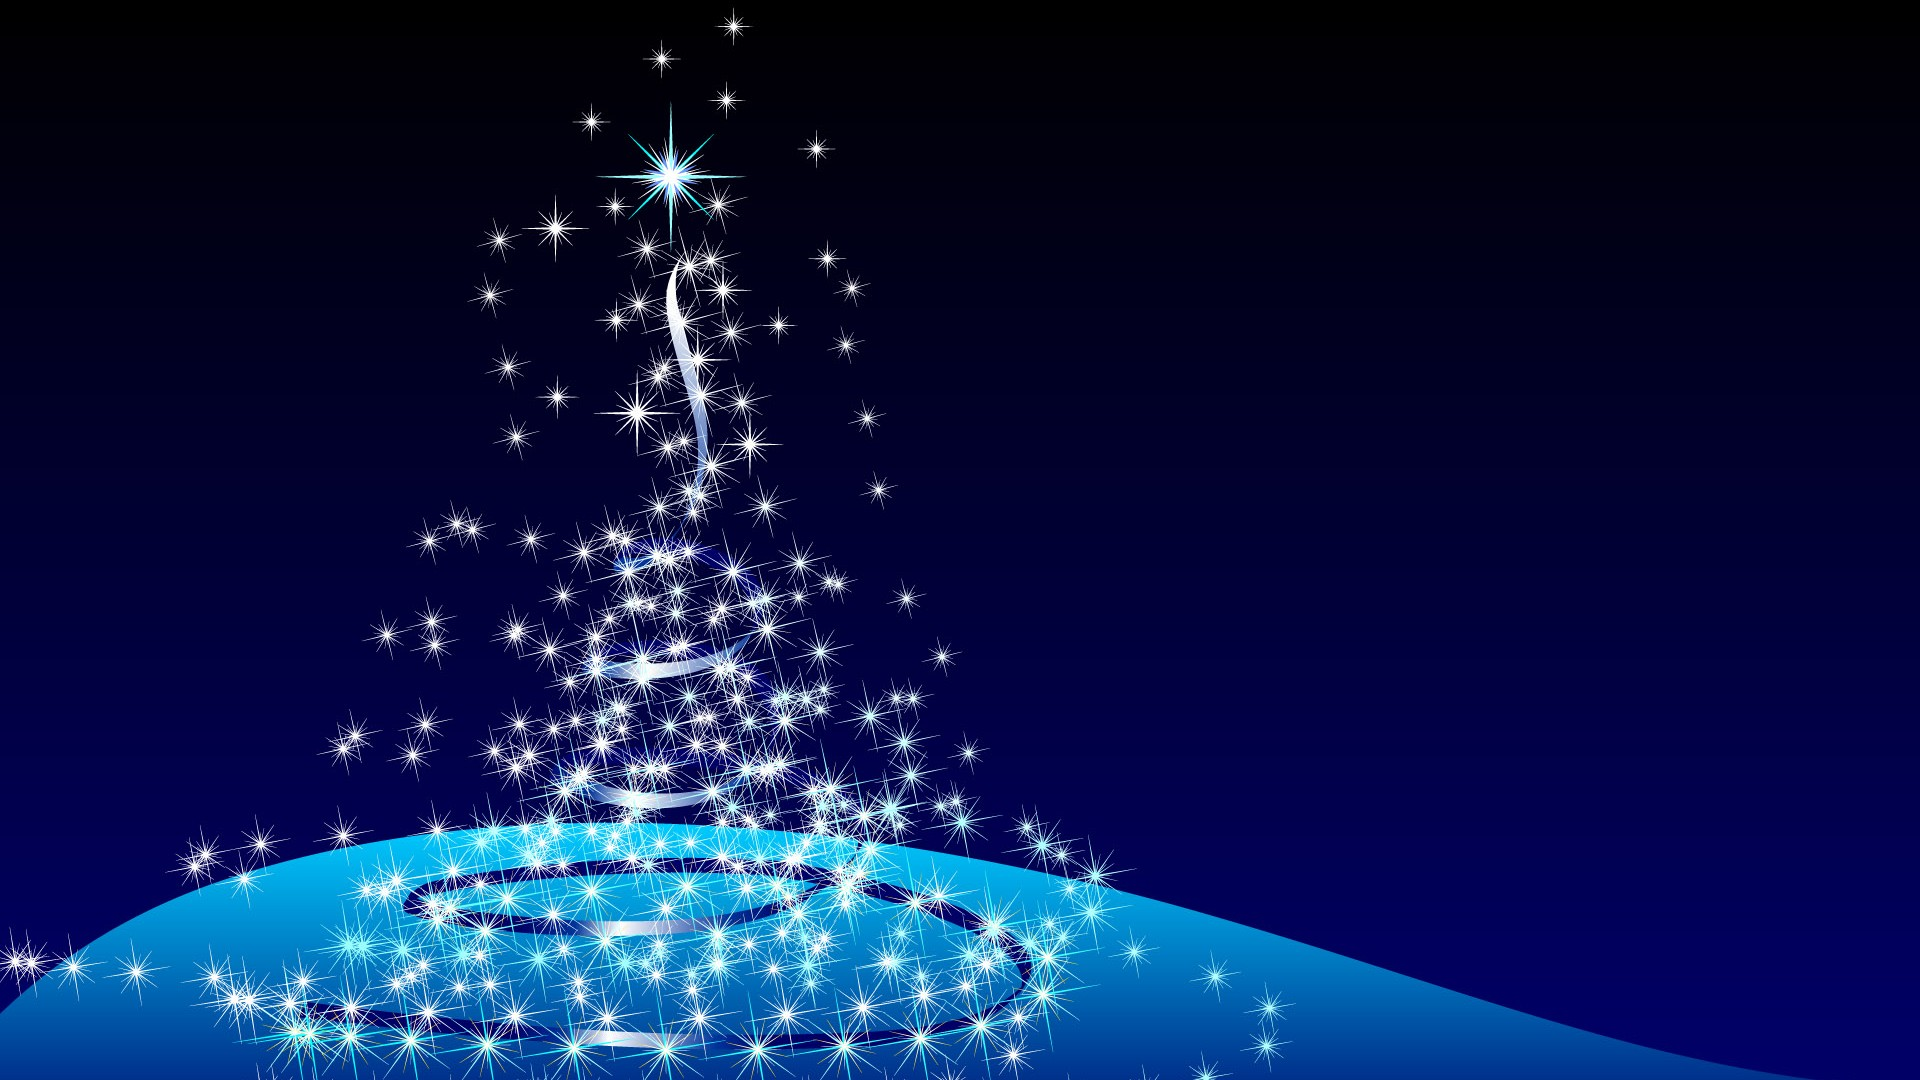 High Definition Wallpaper Download Sparkly Christmas HD